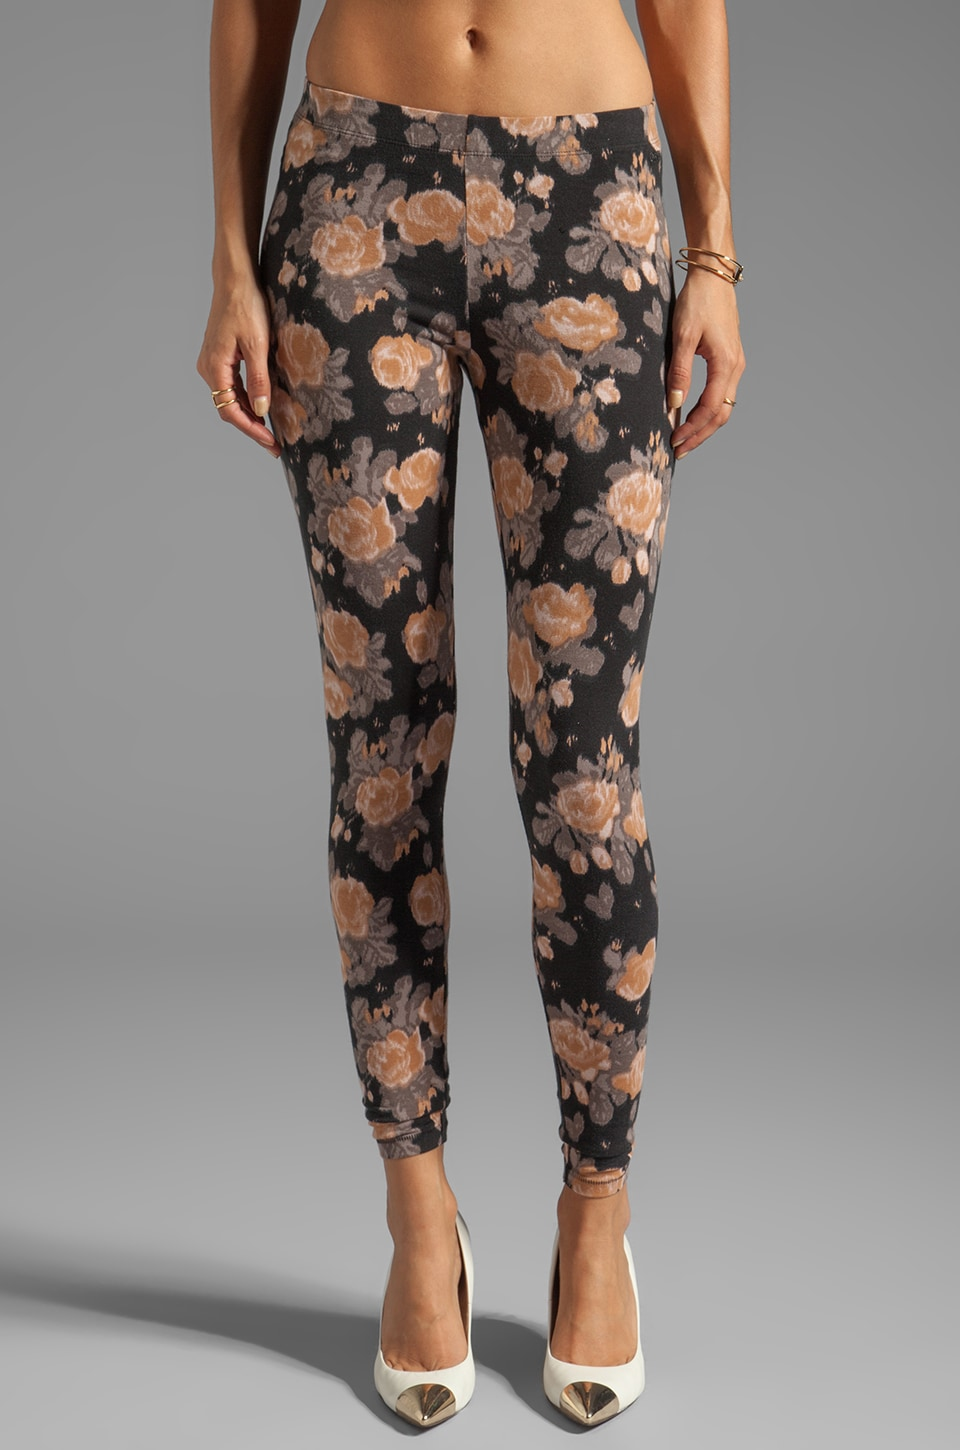 Obey Midnight Special Leggings in Mauve Floral